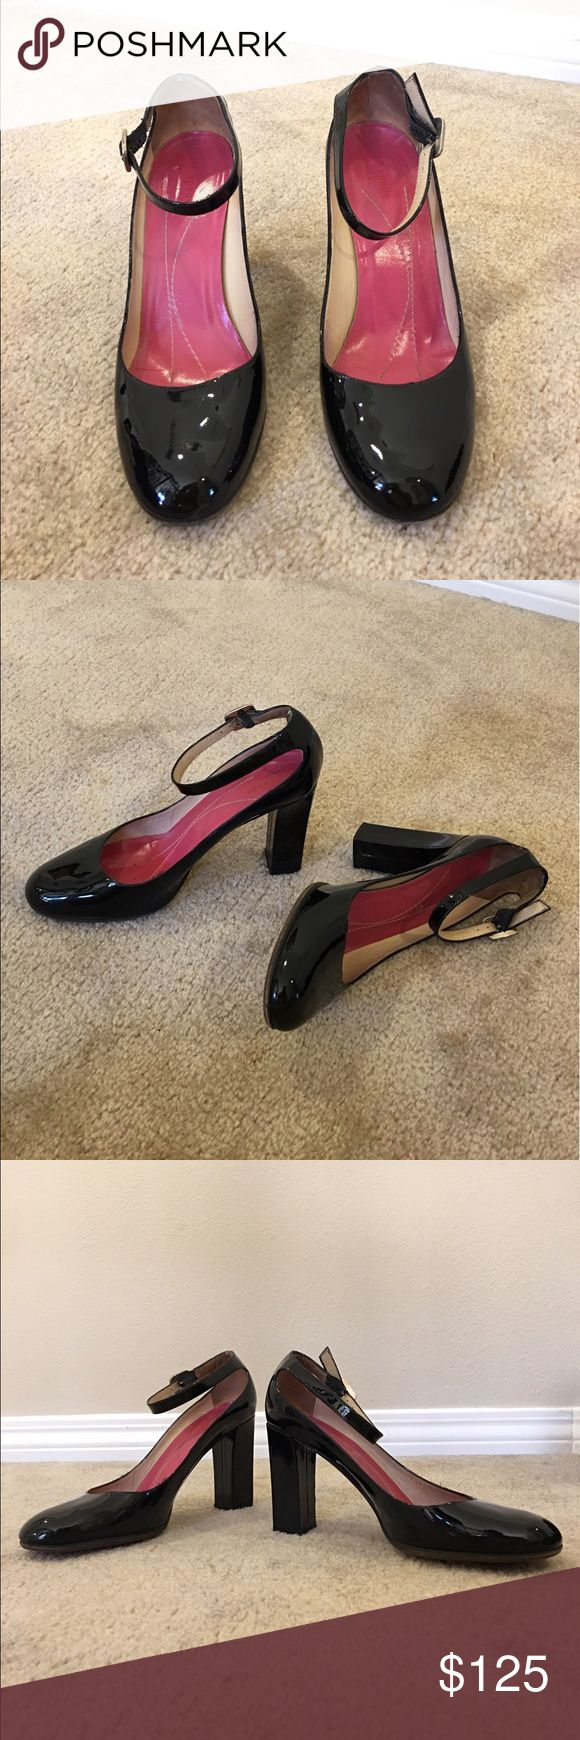 Genuine KATE SPADE patent leather shoes, Italy Genuine KATE SPADE New York patent leather shoes, made in Italy. In gently worn preowned condition with replacement soles and slight nick on back heel (visible in phot).  Marked size 8.5B. All leather (note replacement sole). Silver tone buckle ankle straps. Please ask questions prior to purchase. 🚫trades 🚫lowball offers. kate spade Shoes Heels